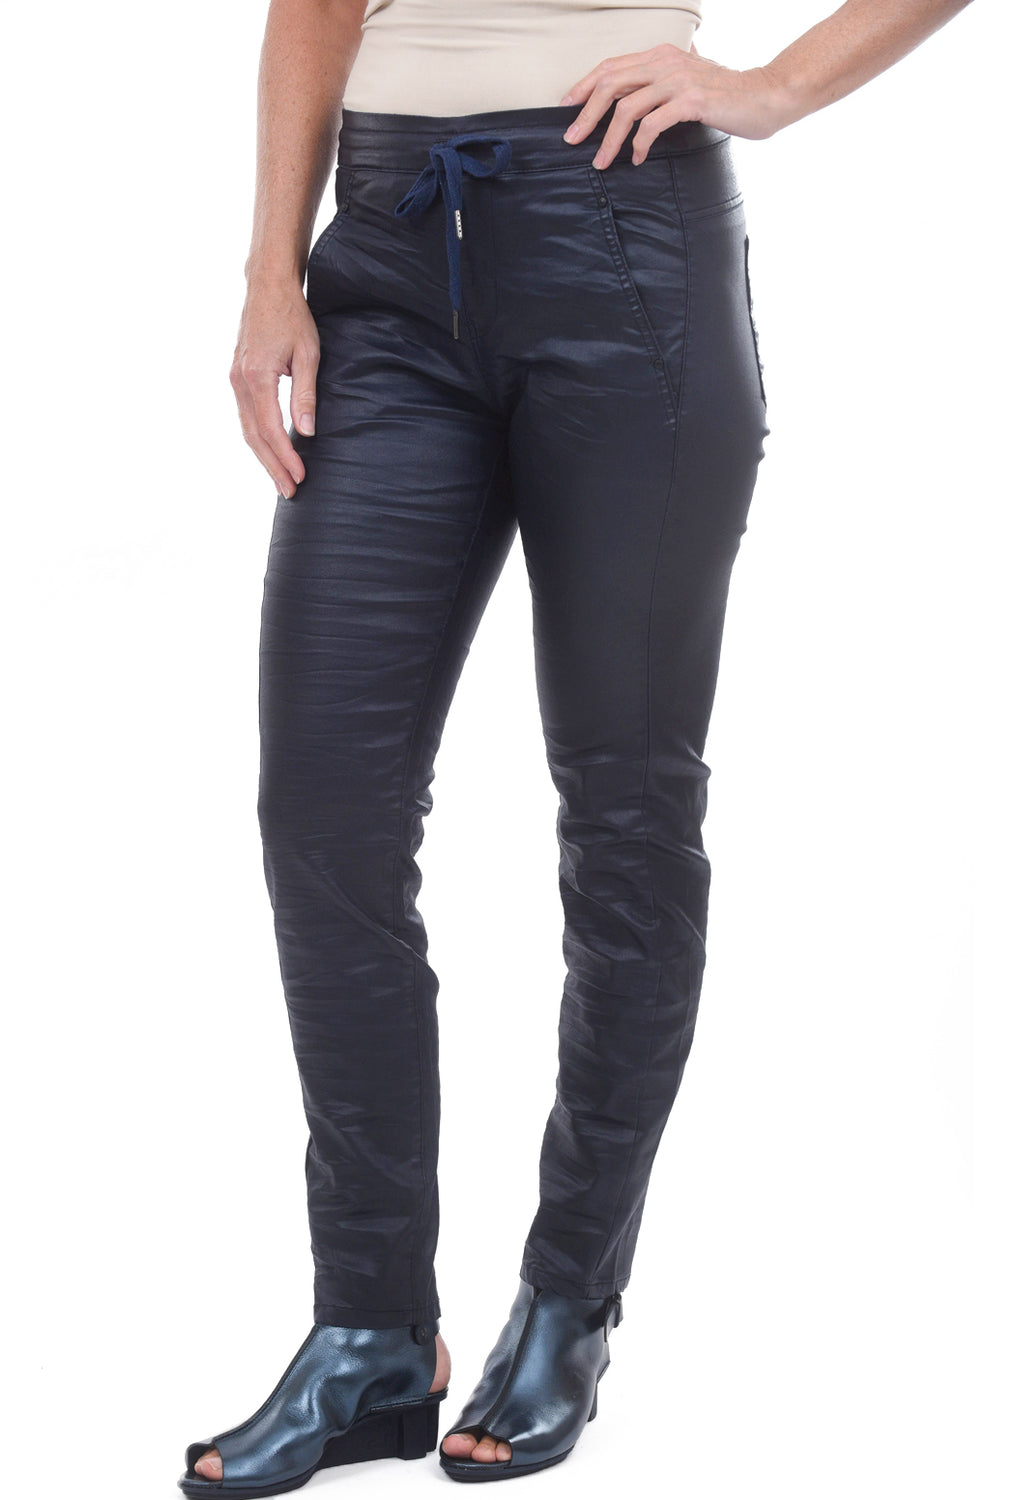 Alembika Bika Favorite Shiny Skinnies, Navy